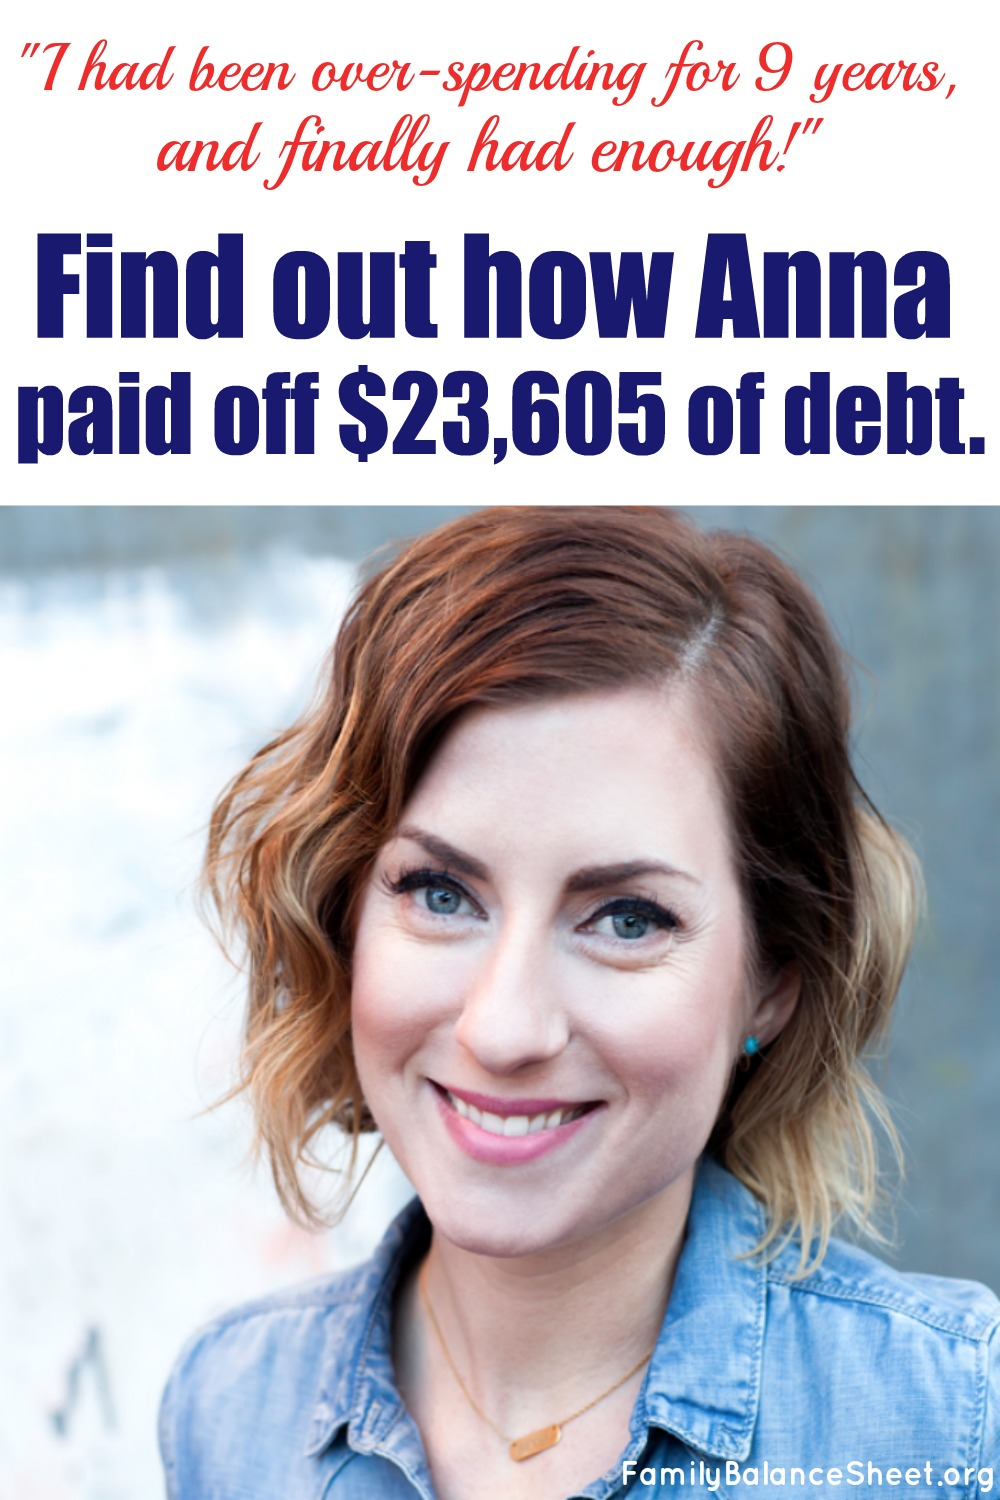 Anna's Debt Free Story